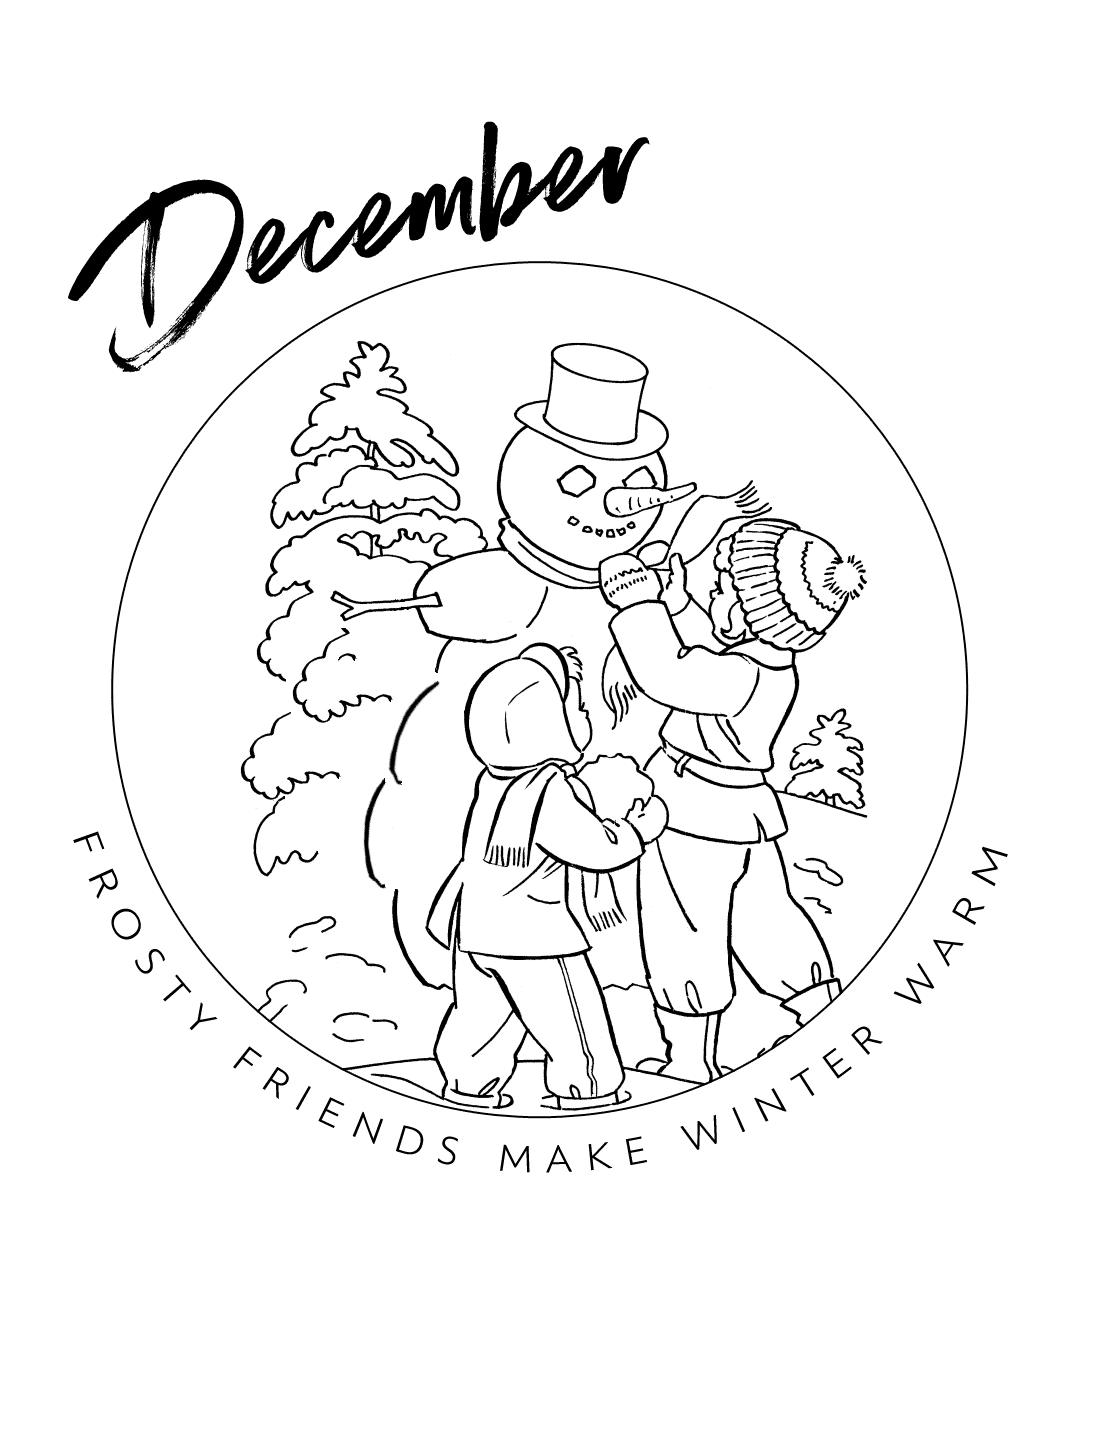 December Ornament Snowman Coloring Page